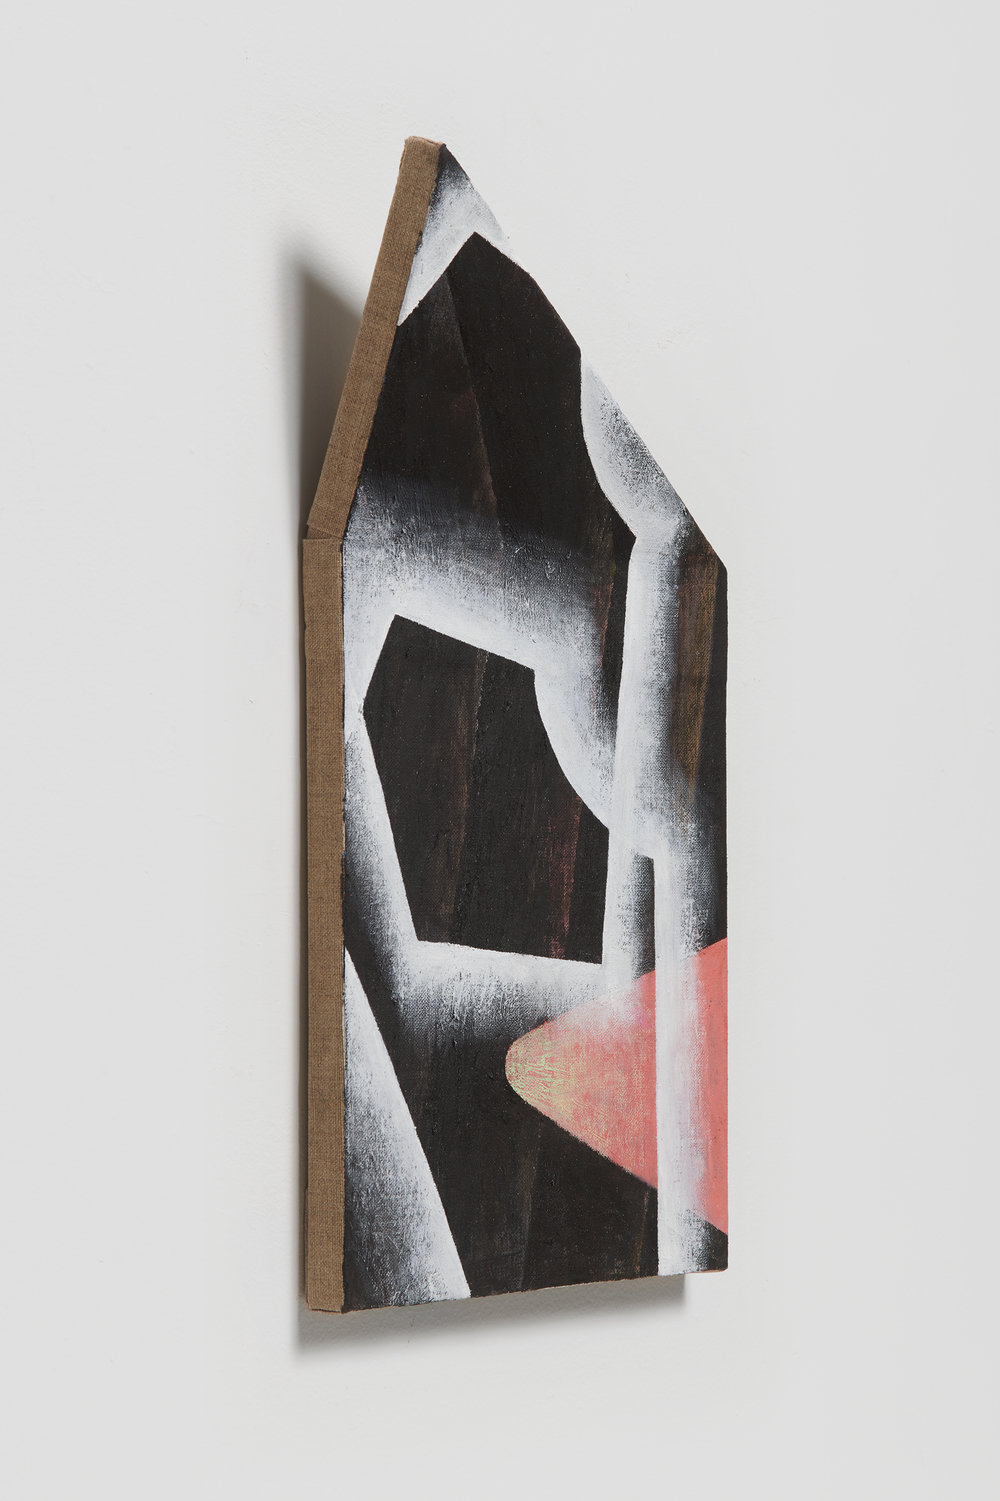 Ezra Tessler   The Unreleyeable Organ ,  2018 Oil and dirt on linen on shaped wood 17 x 9 x 3 inches